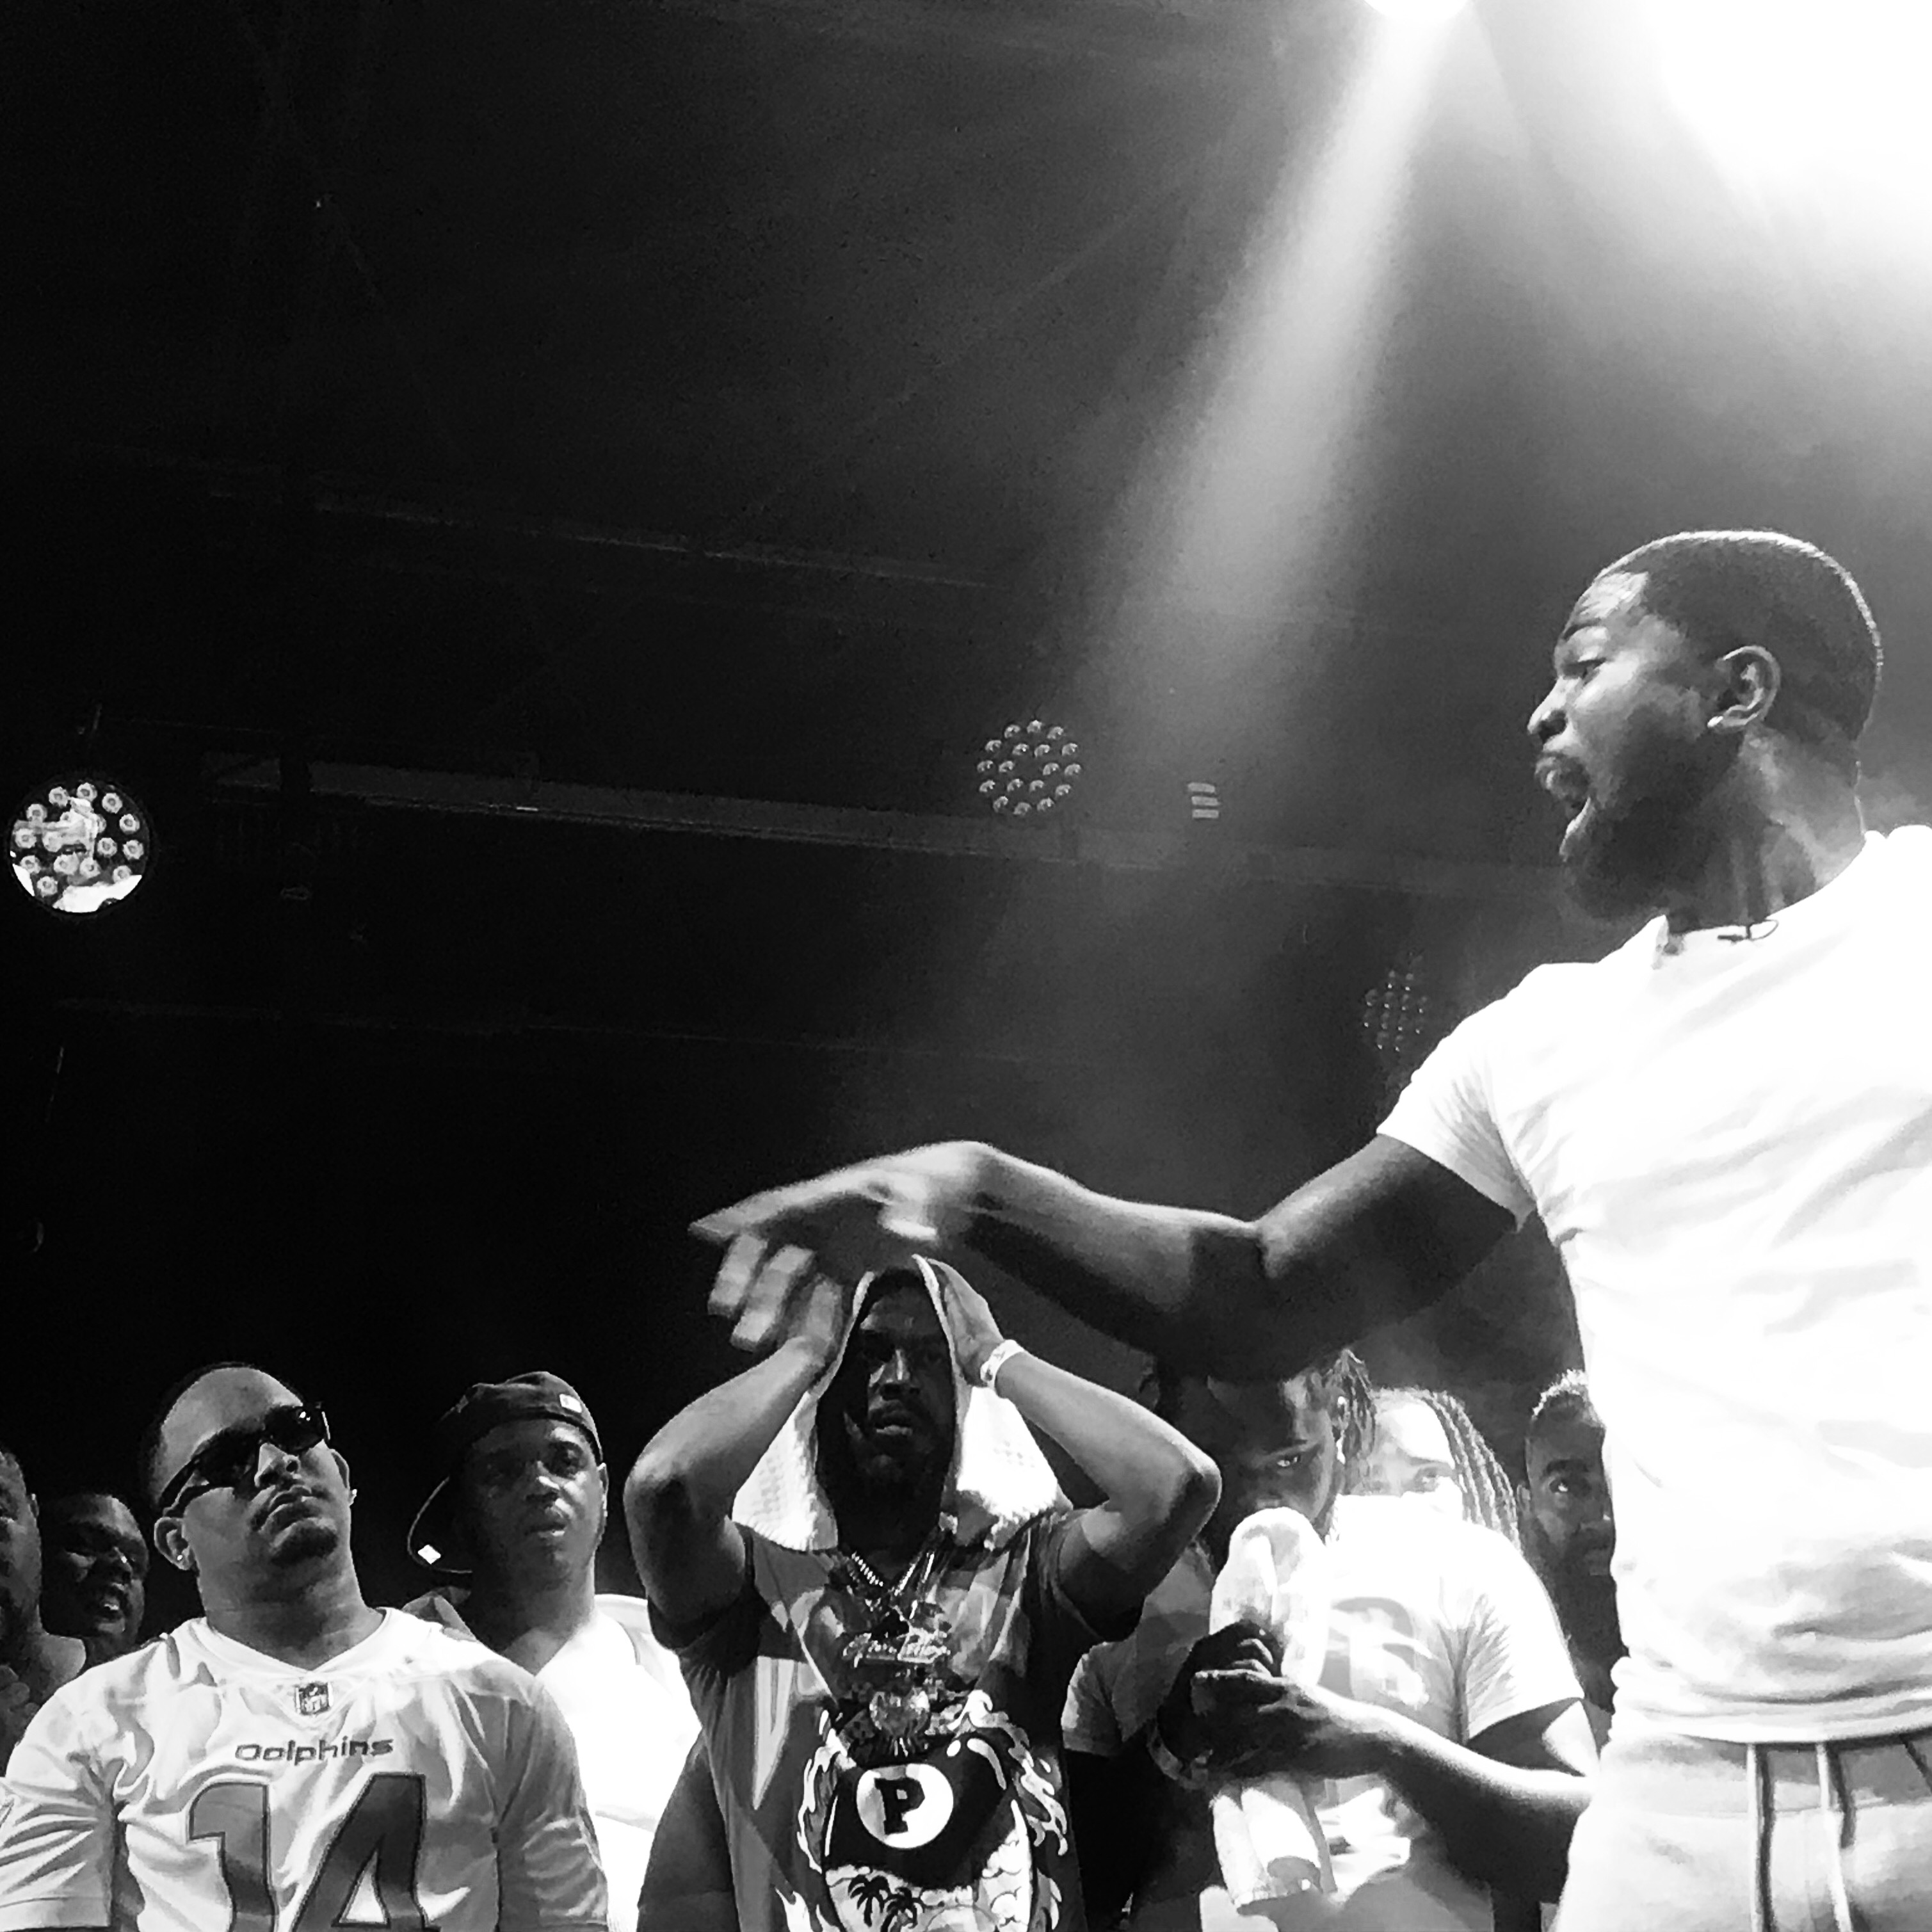 tsu surf Archives - The Source